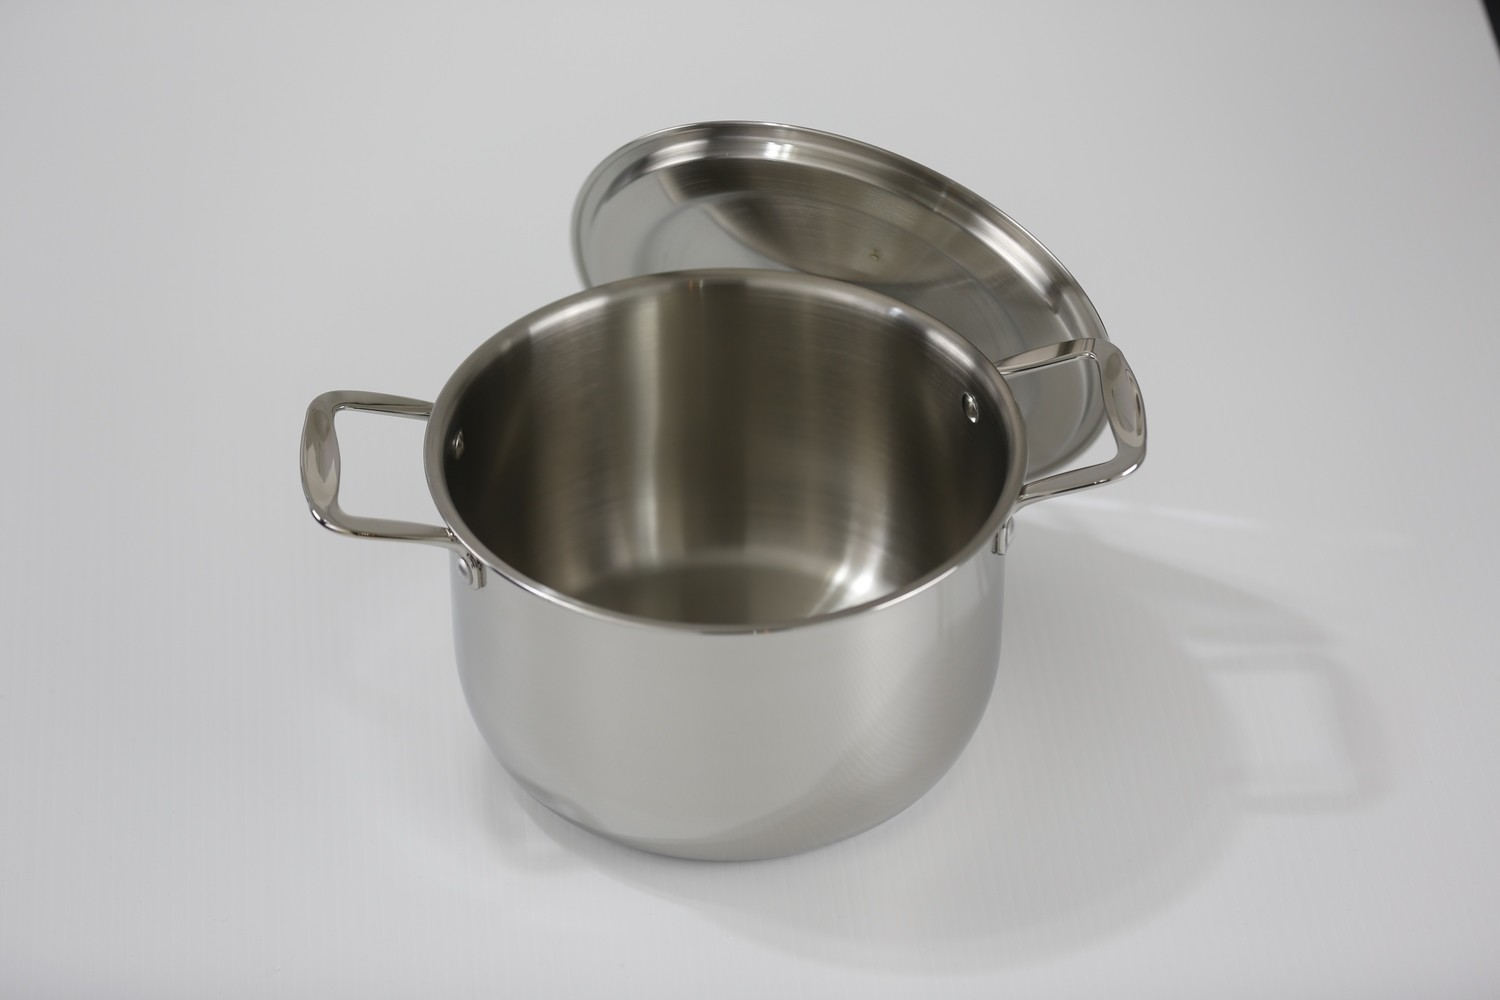 SS1-6.87 Qt. Stainless Steel tri-ply bottom induction Sauce Pot with cover